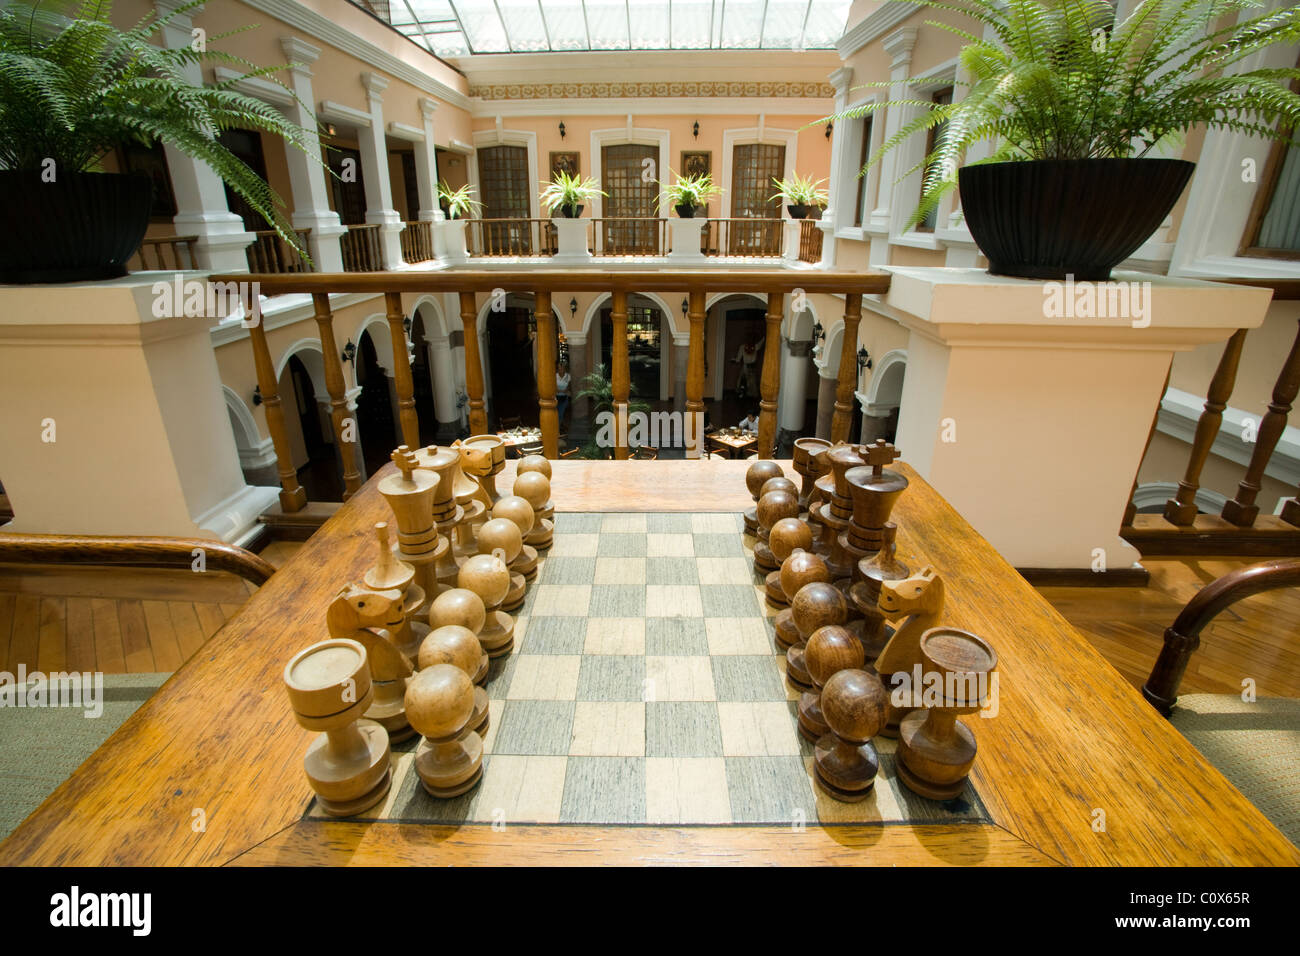 Chess Set and Atrium at Hotel Patio Andaluz - Quito, Ecuador - Chess Set And Atrium At Hotel Patio Andaluz - Quito, Ecuador Stock